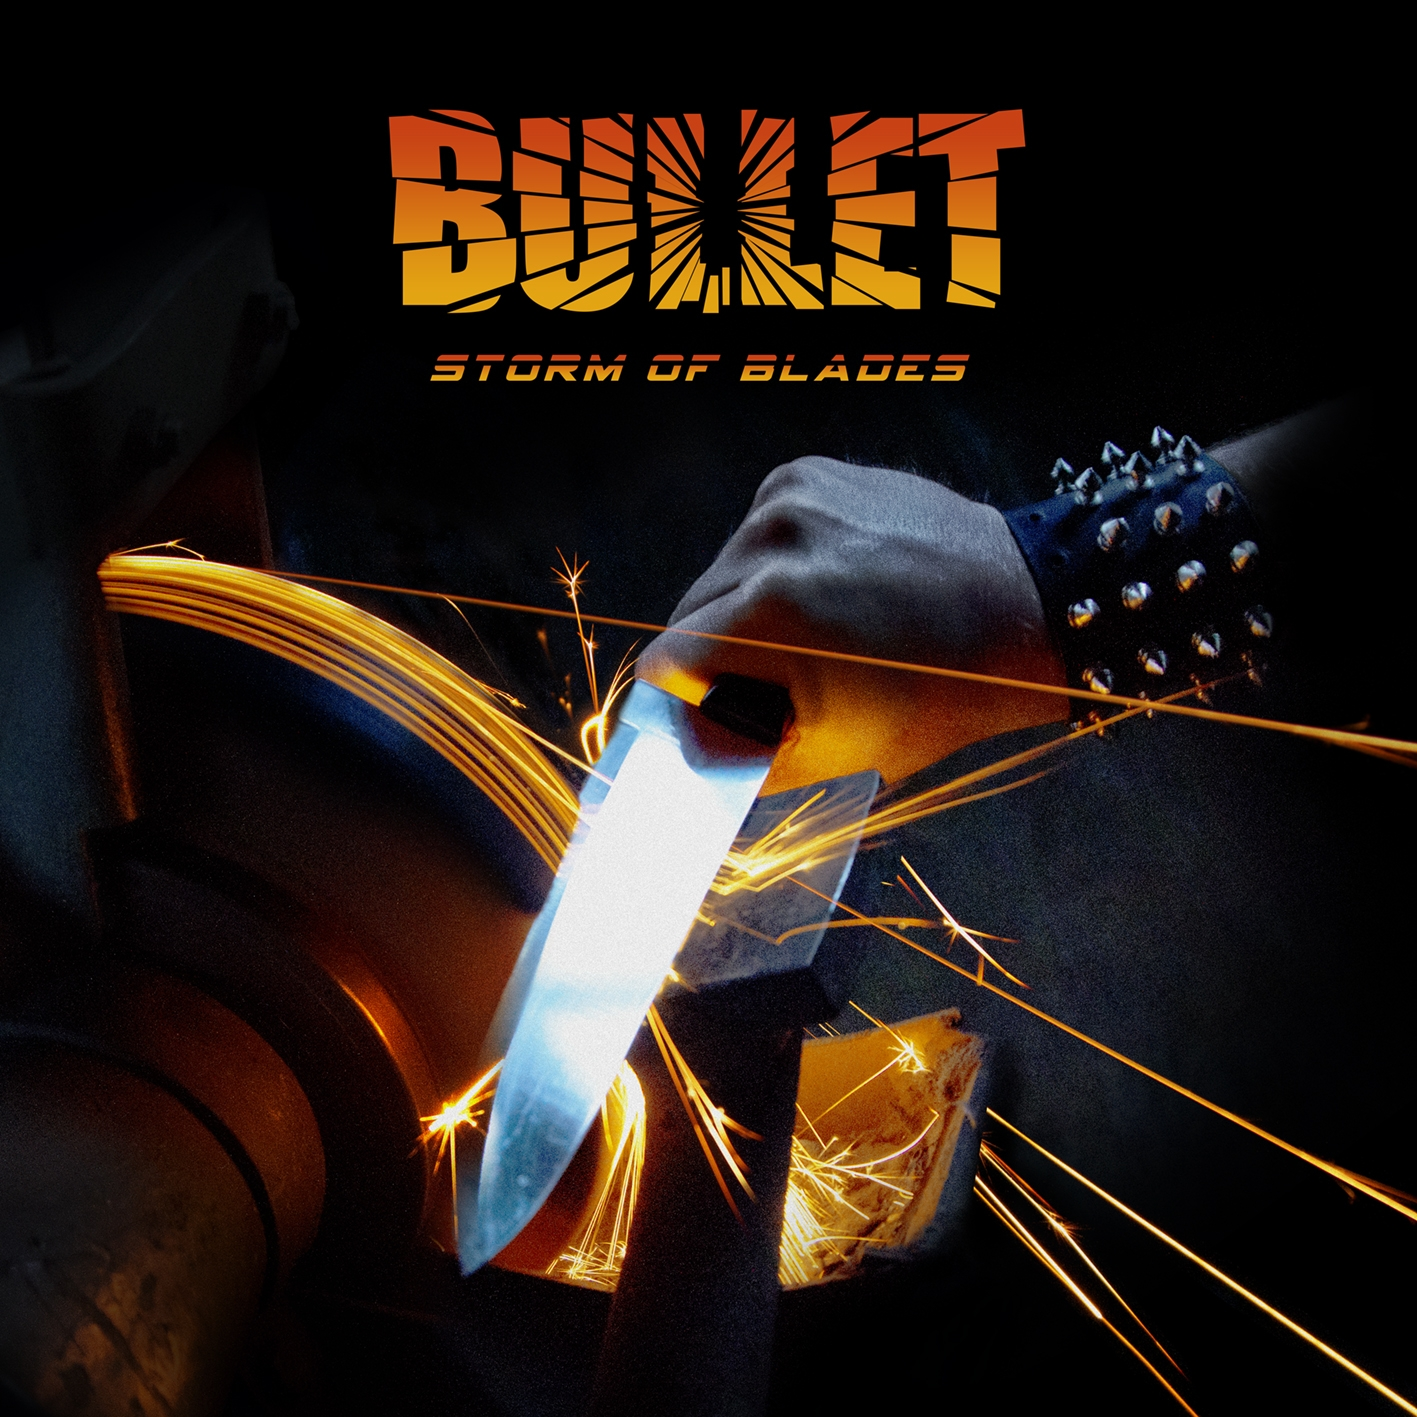 Music Review: Bullet CD: Storm of Blades